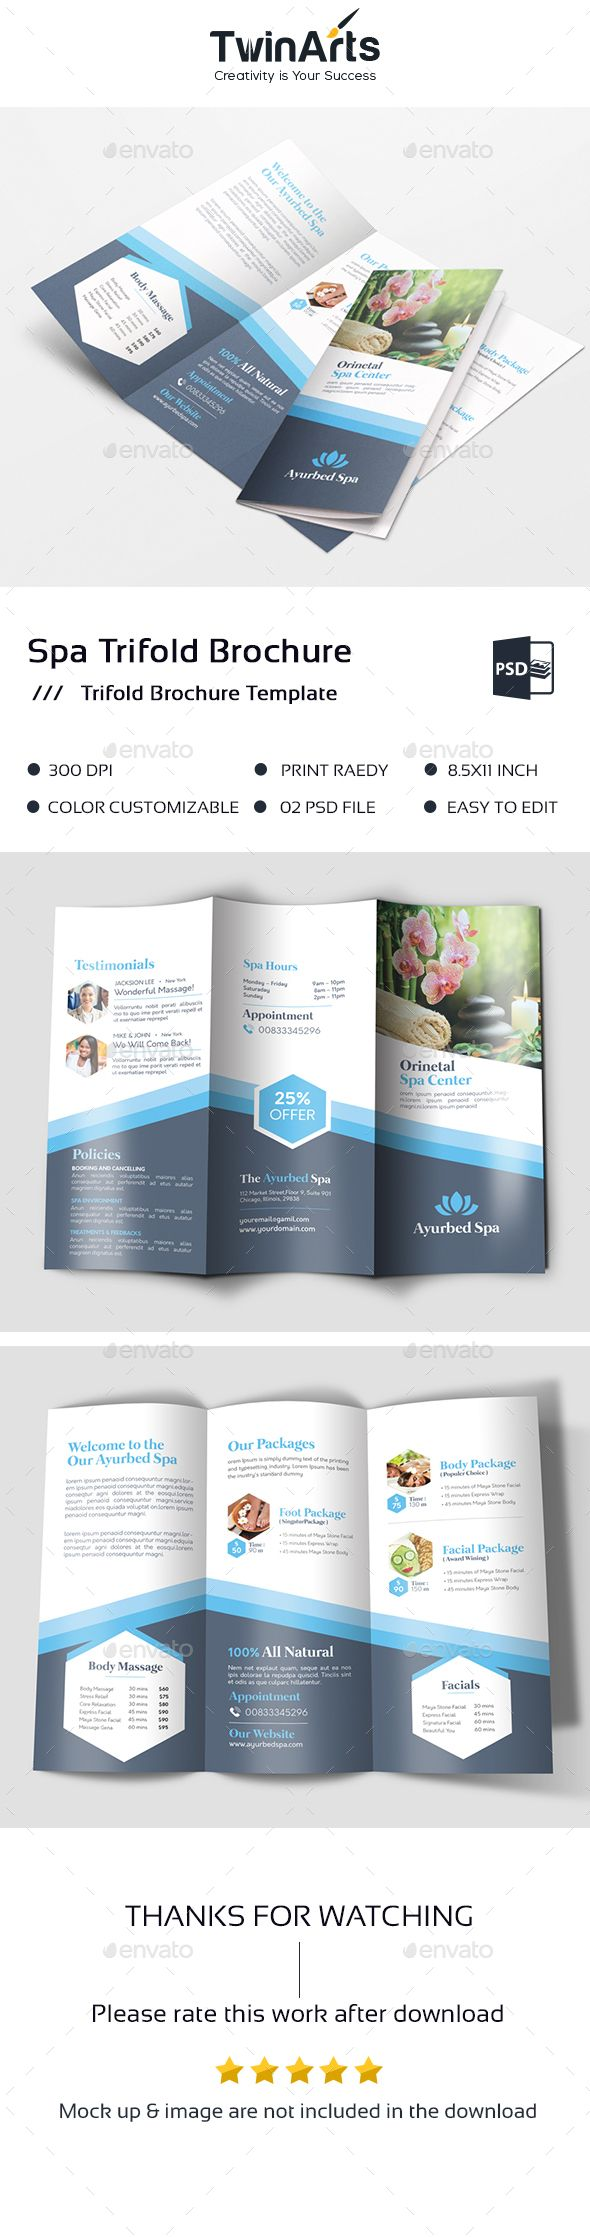 Template Spa Trifold Brochure Spa Trifold